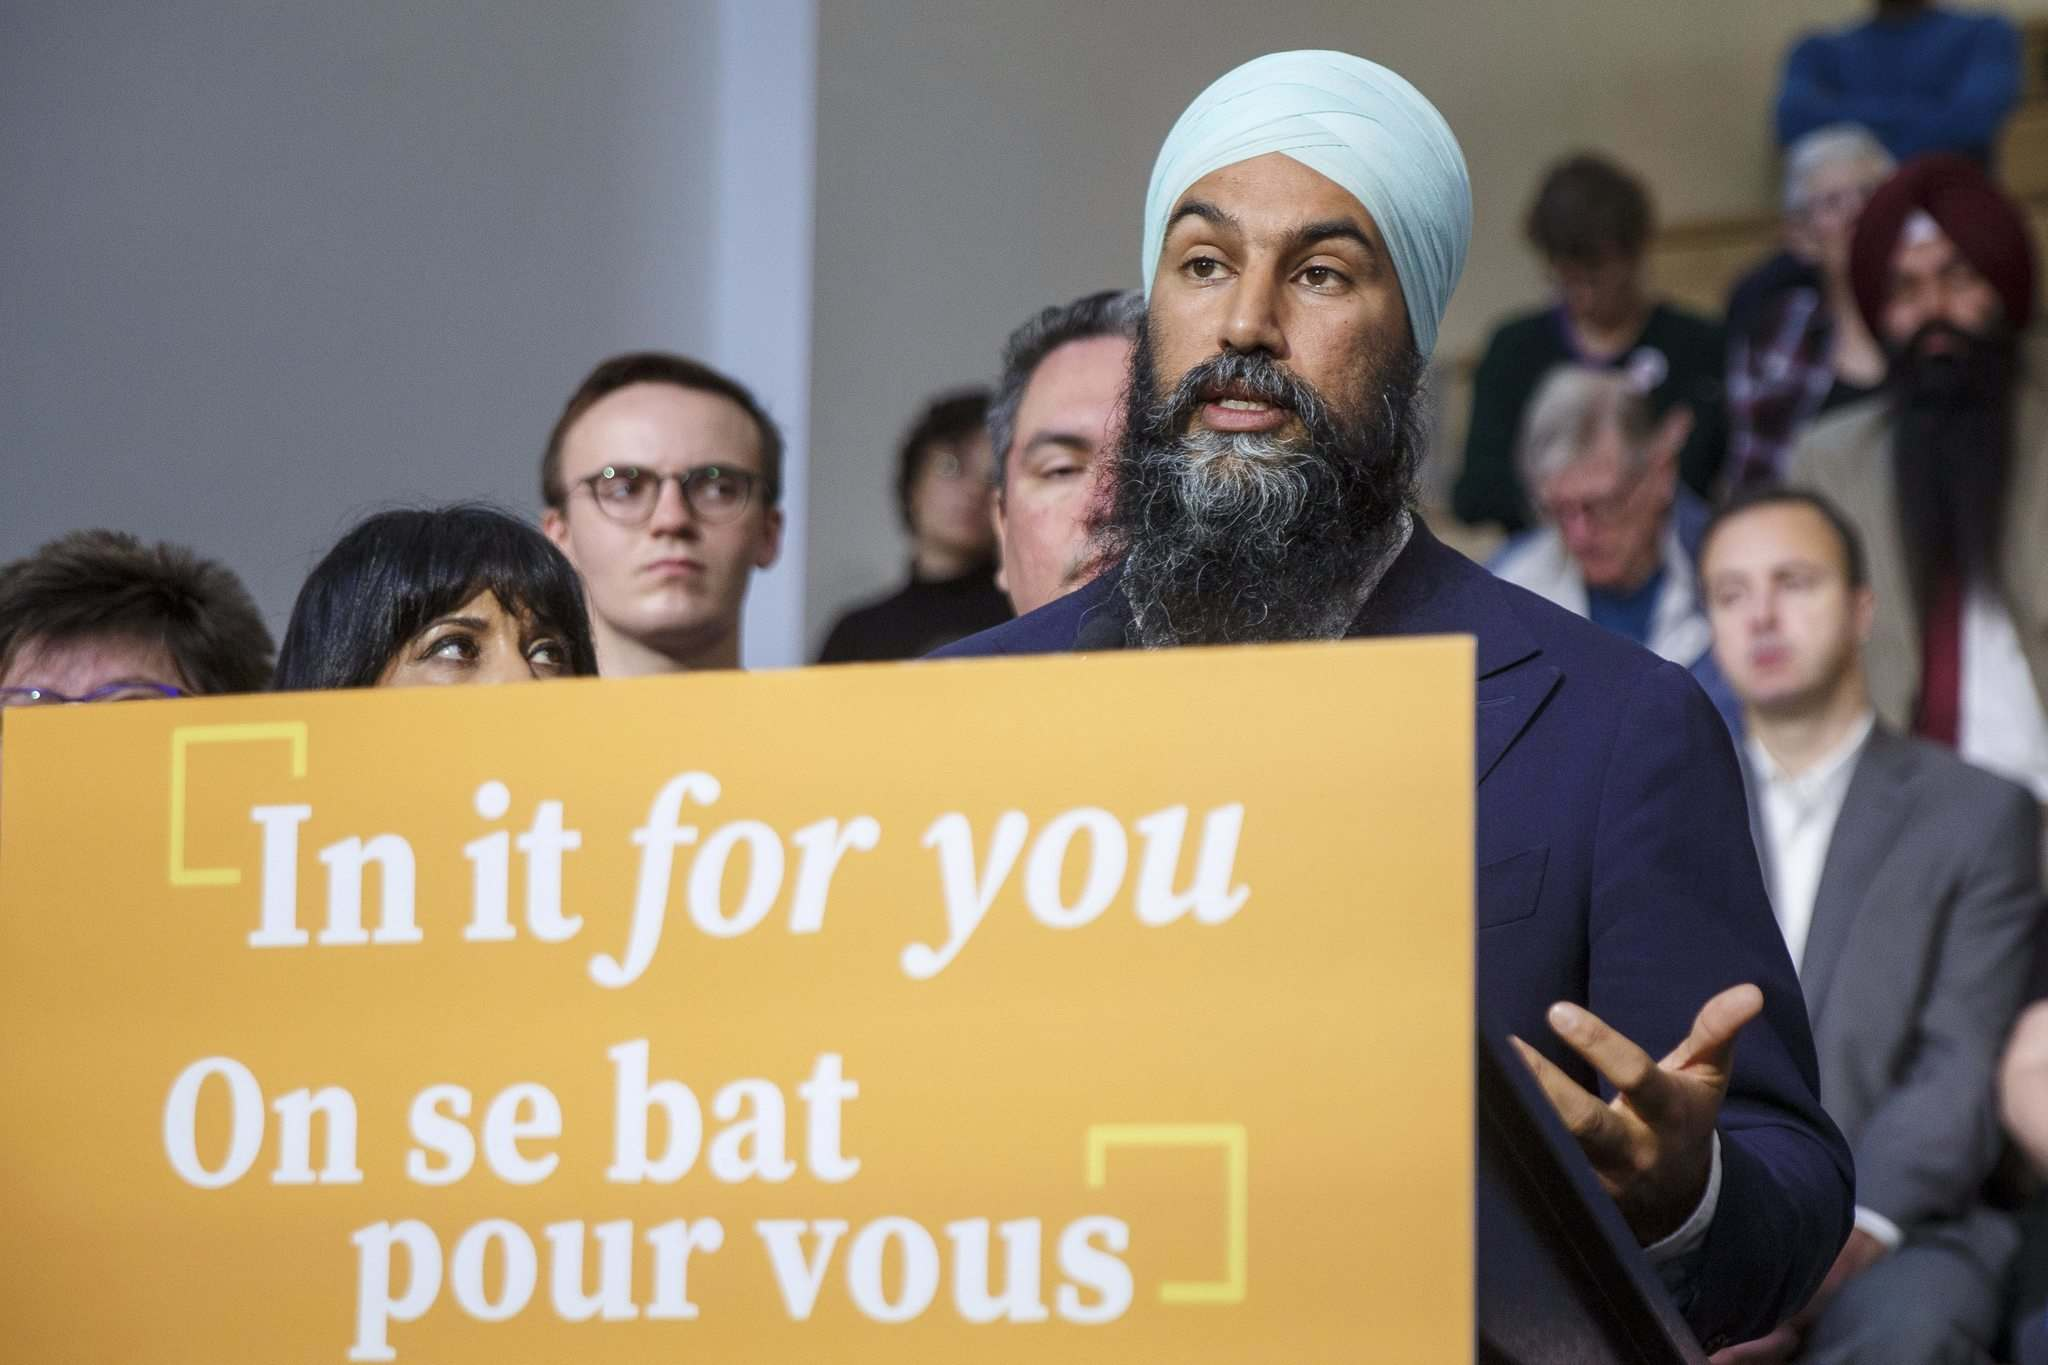 MIKE DEAL / WINNIPEG FREE PRESS files</p><p>NDP Leader Jagmeet Singh addresses the crowd during a stop at the University of Winnipeg on Sept. 24.</p>